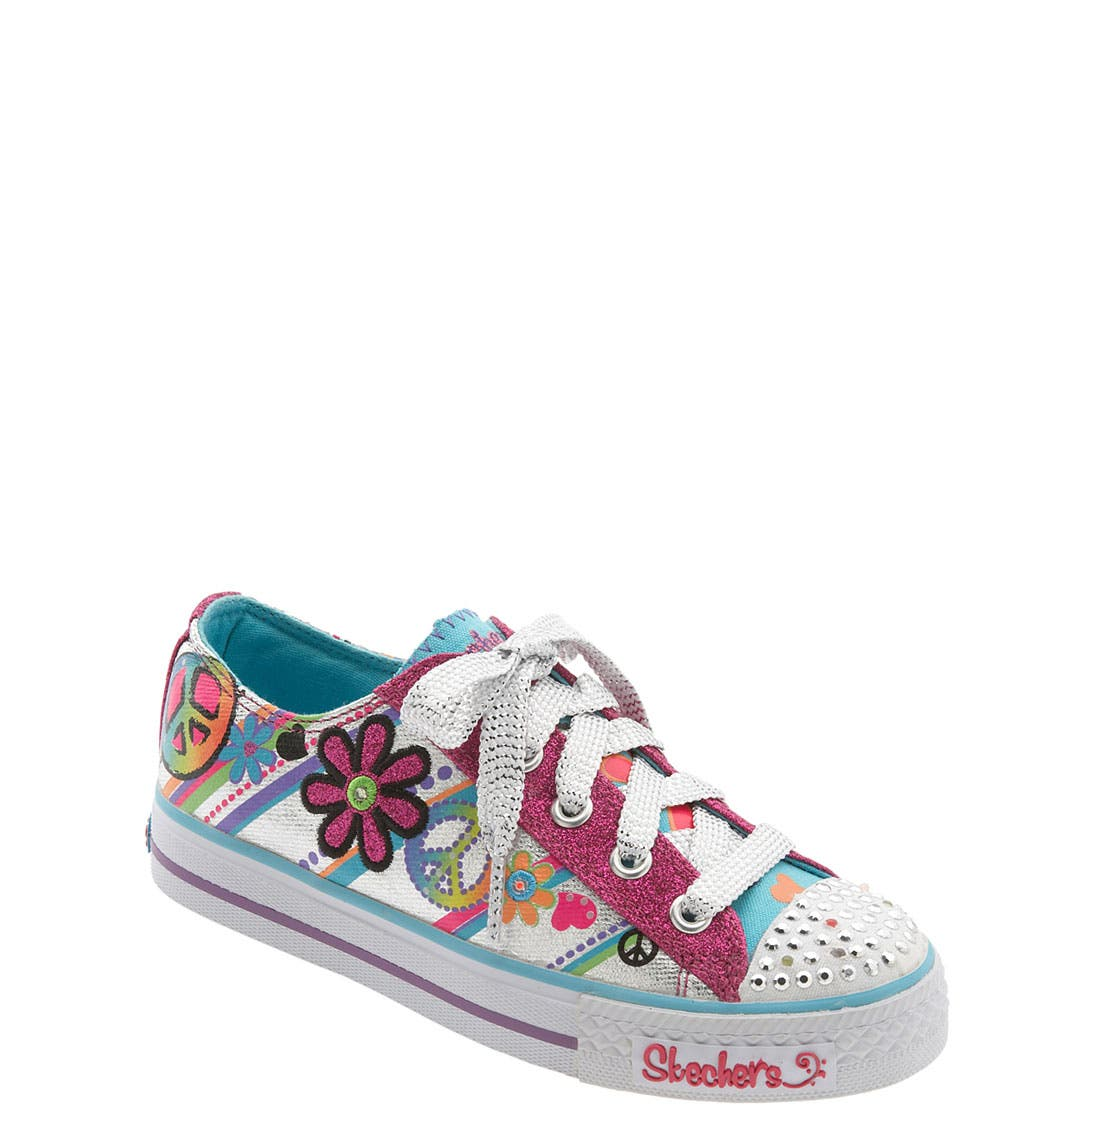 Alternate Image 1 Selected - SKECHERS 'Shuffles - Lights' Sneaker (Walker, Toddler & Little Kid)